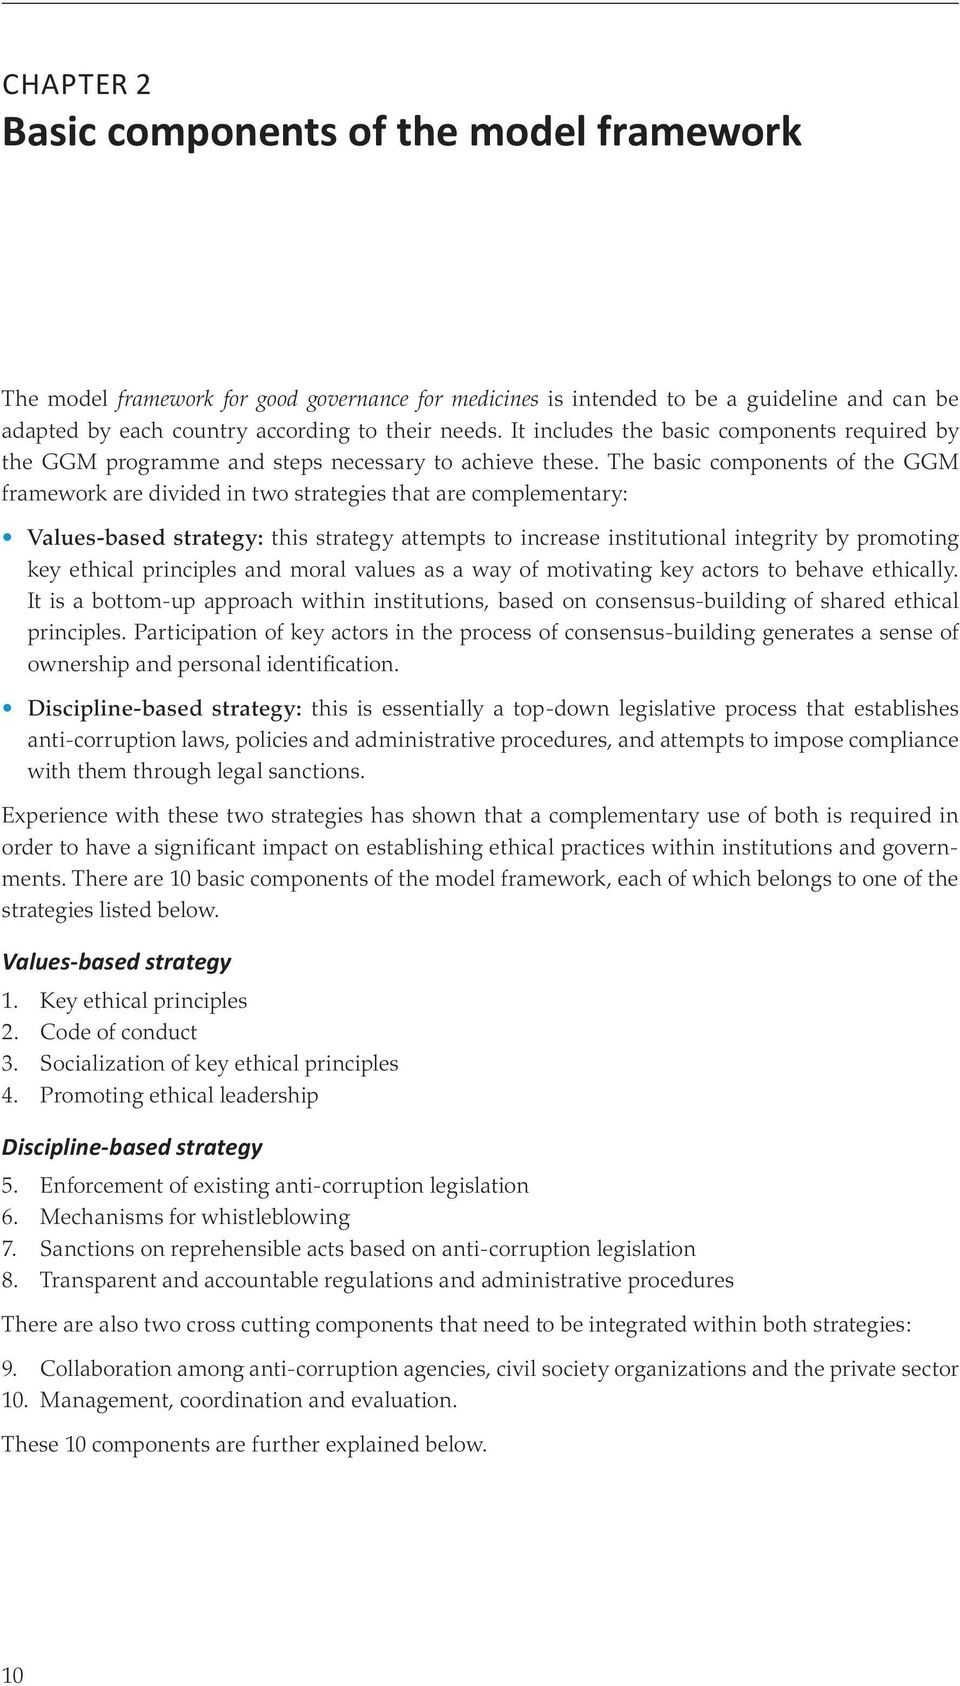 The basic components of the GGM framework are divided in two strategies that are complementary: Values-based strategy: this strategy attempts to increase institutional integrity by promoting key